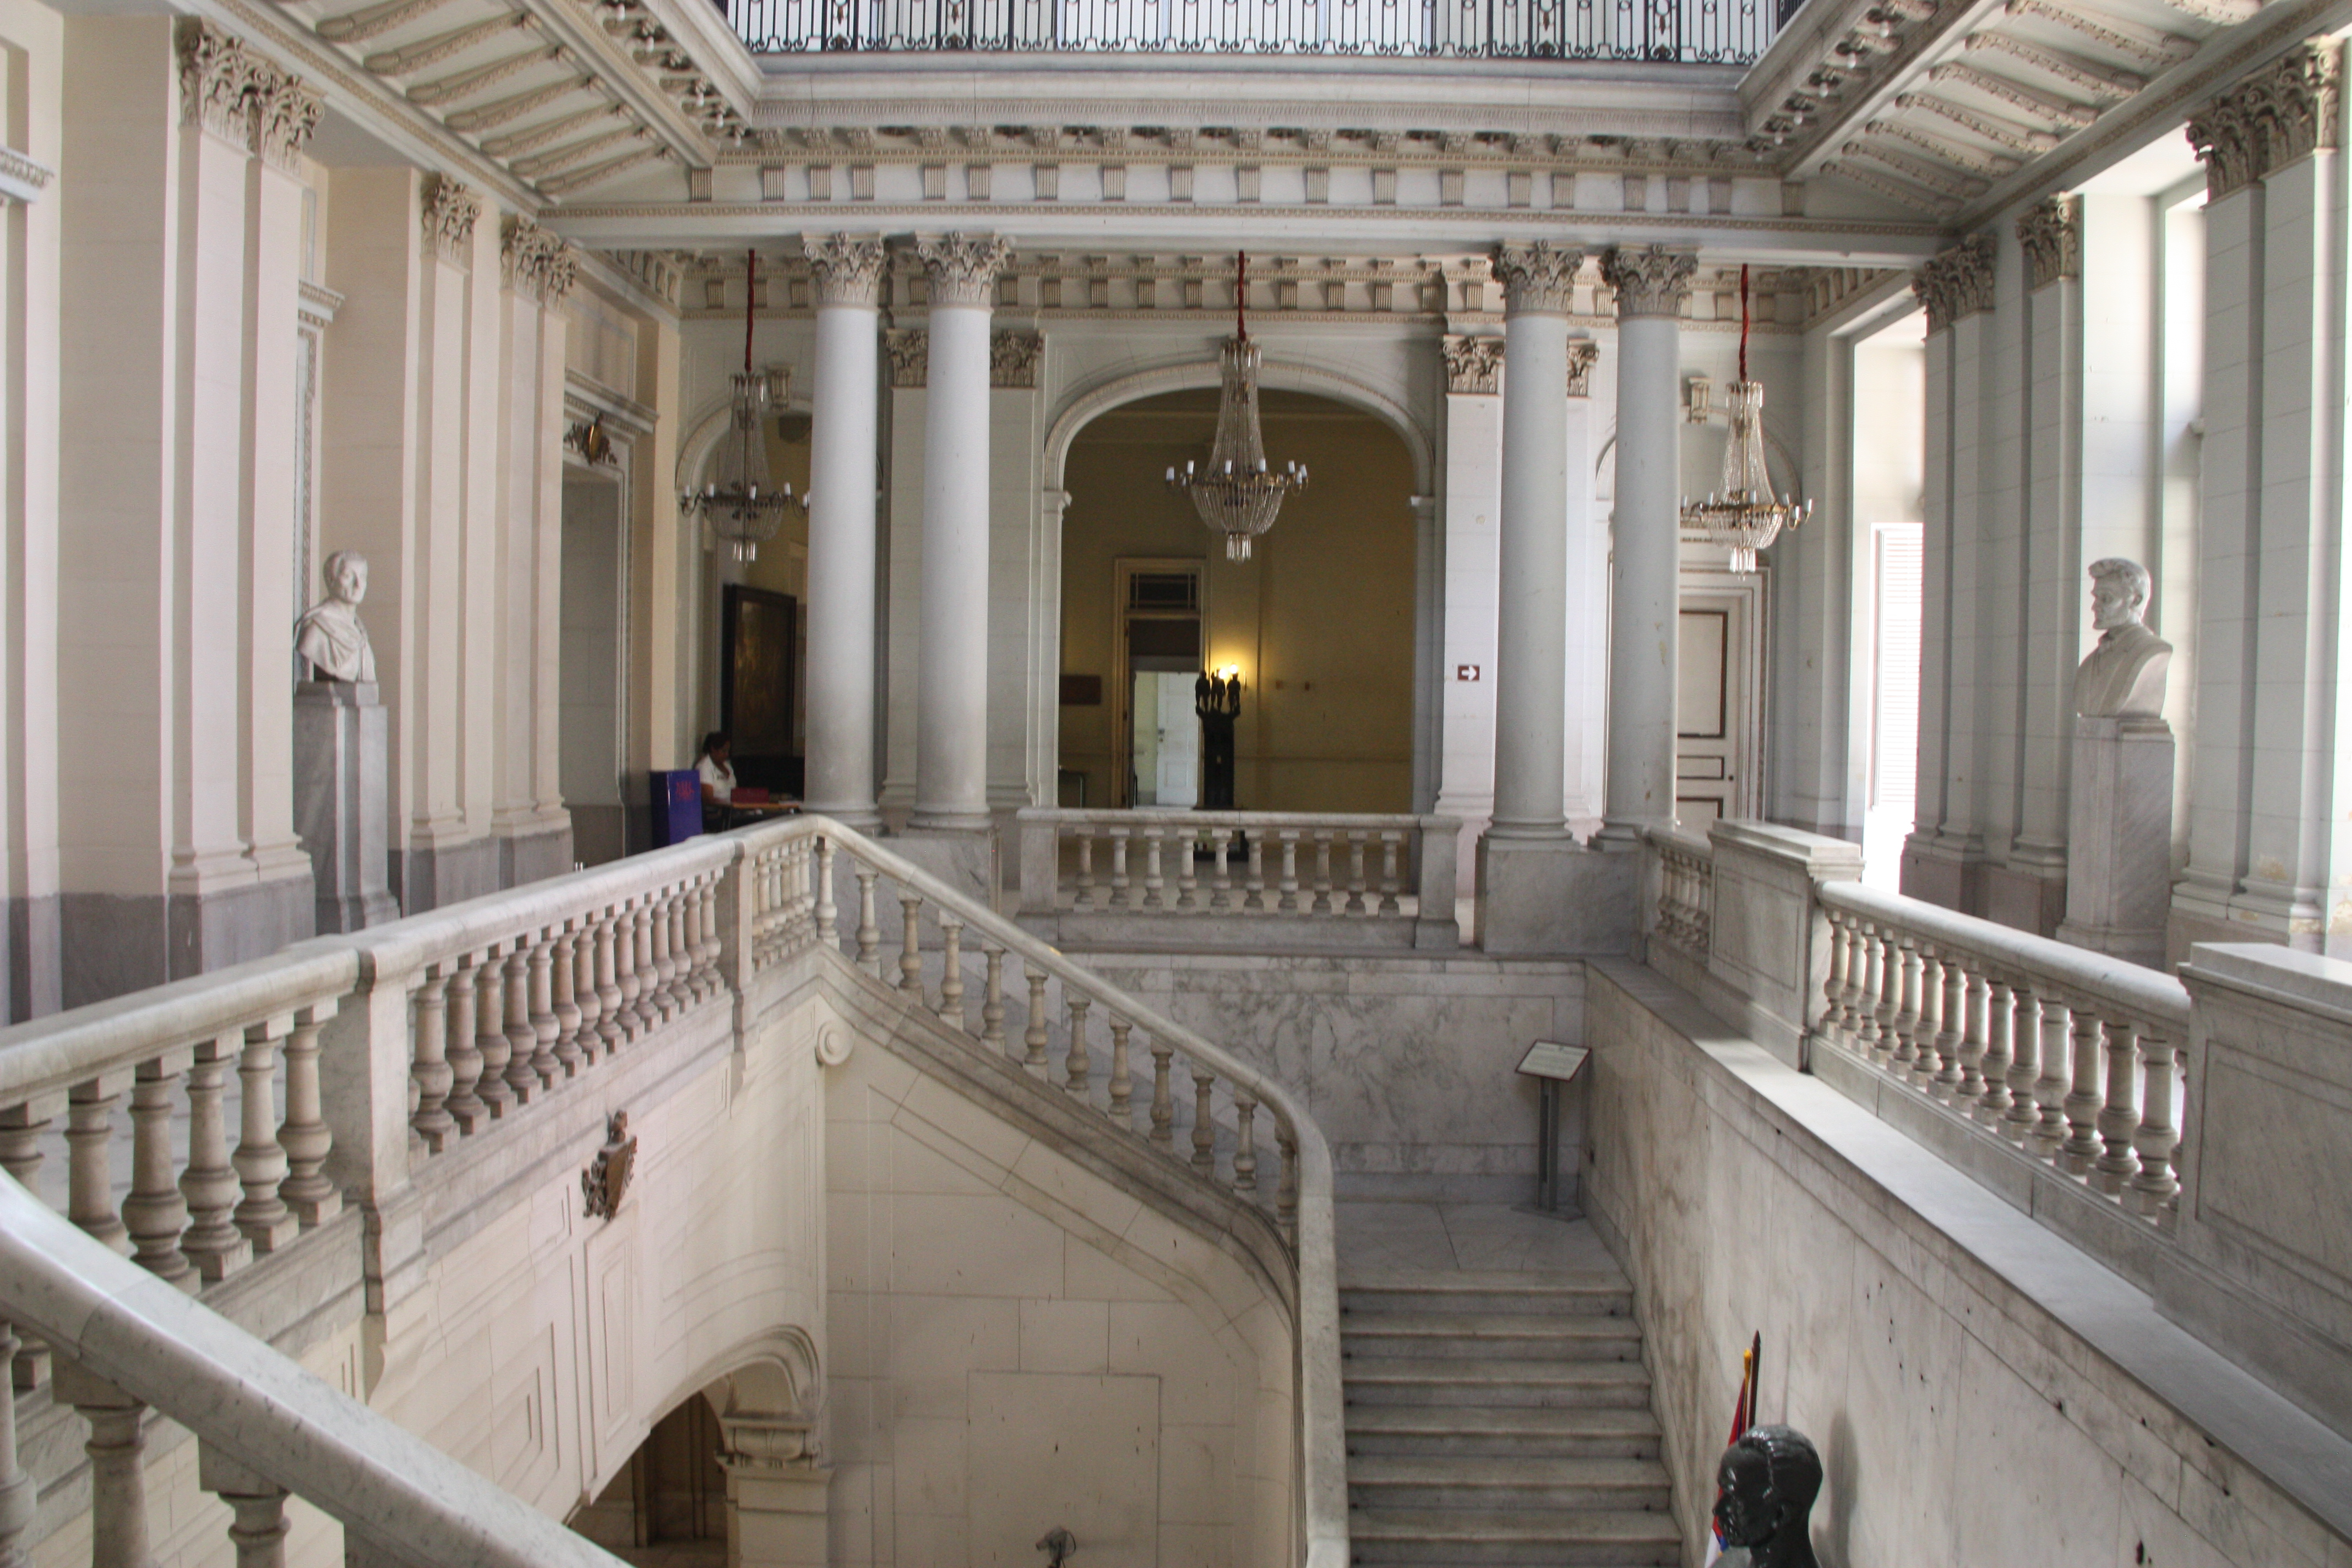 Grand stair case of the Presidential Palace.